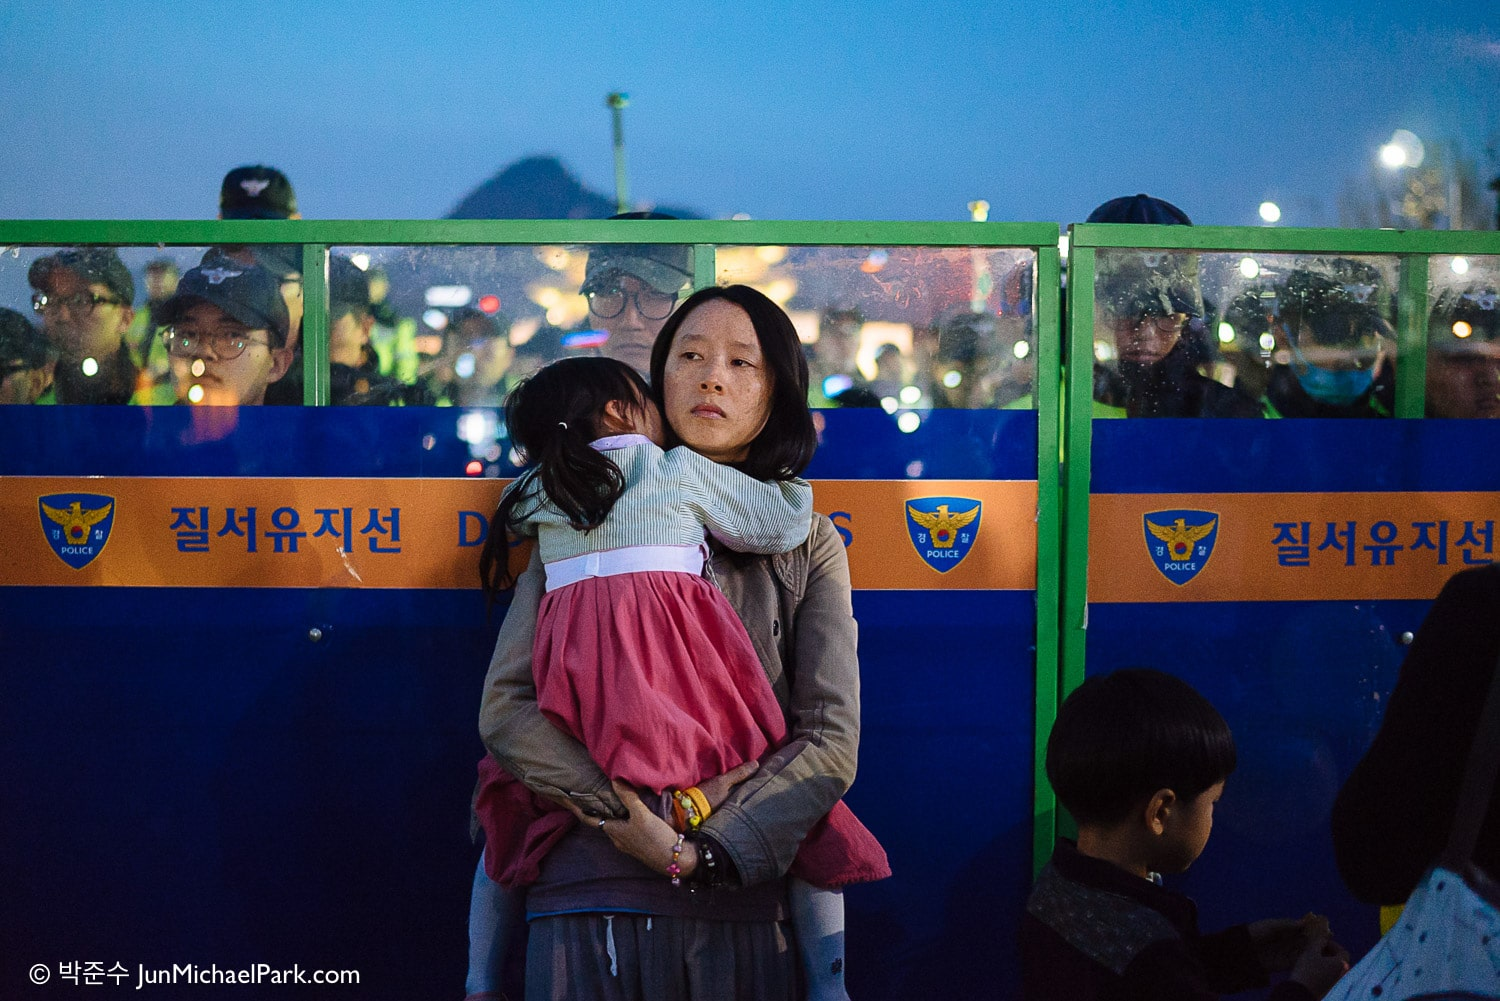 A mother stands in front of the police line in solidarity with Sewol families during a protest around the one year anniversary.